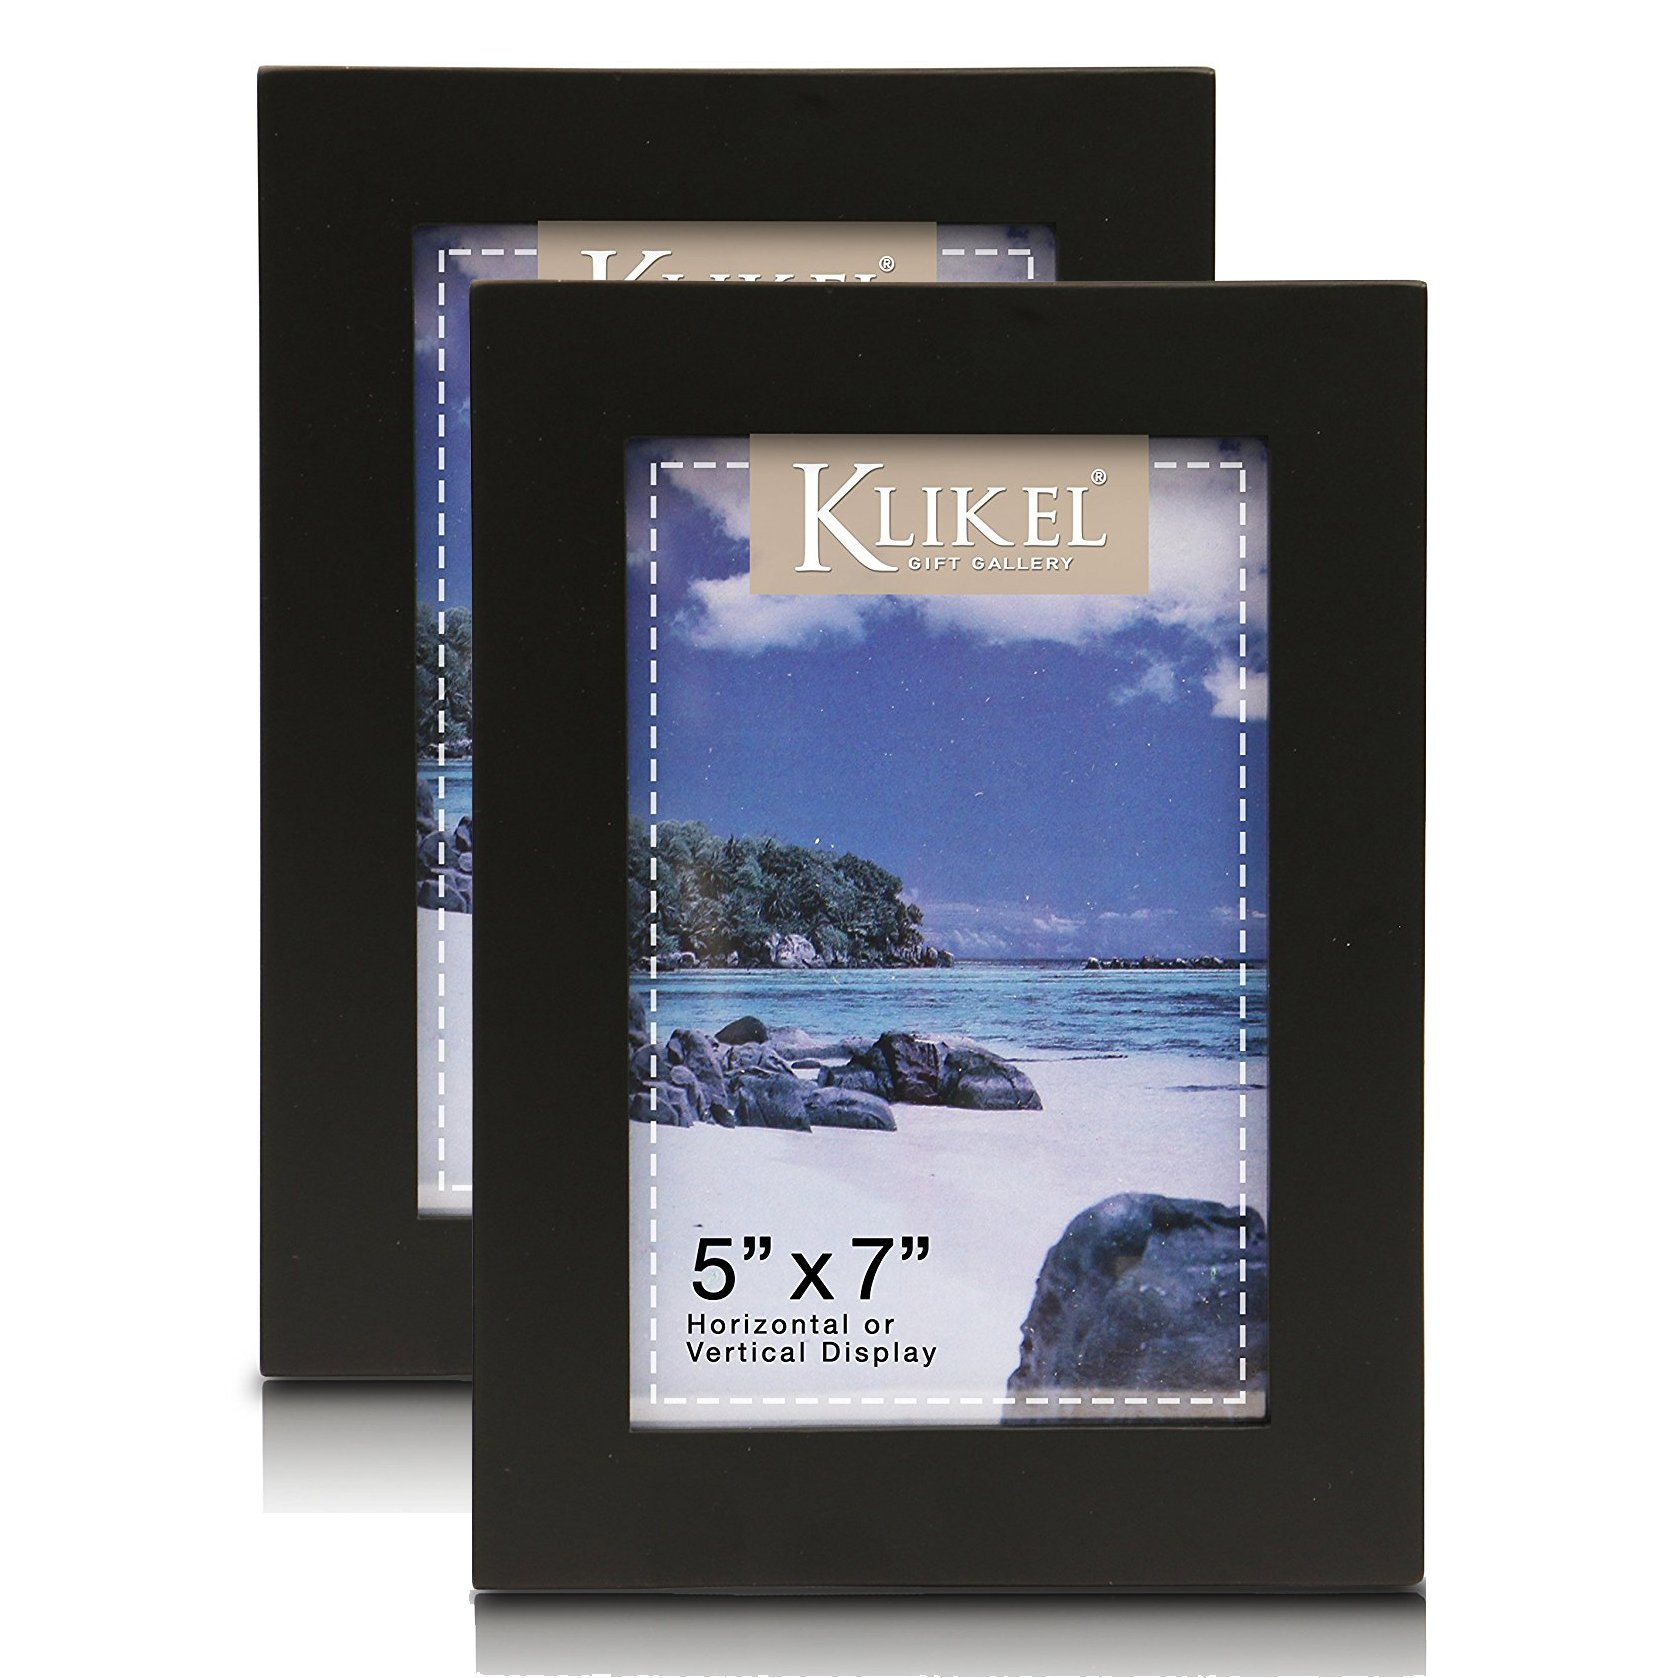 Klikel 5 X 7 Black Wooden Picture Frame - Black Wooden Wall Hanging And Table Standing Photo Frame, Set of 2